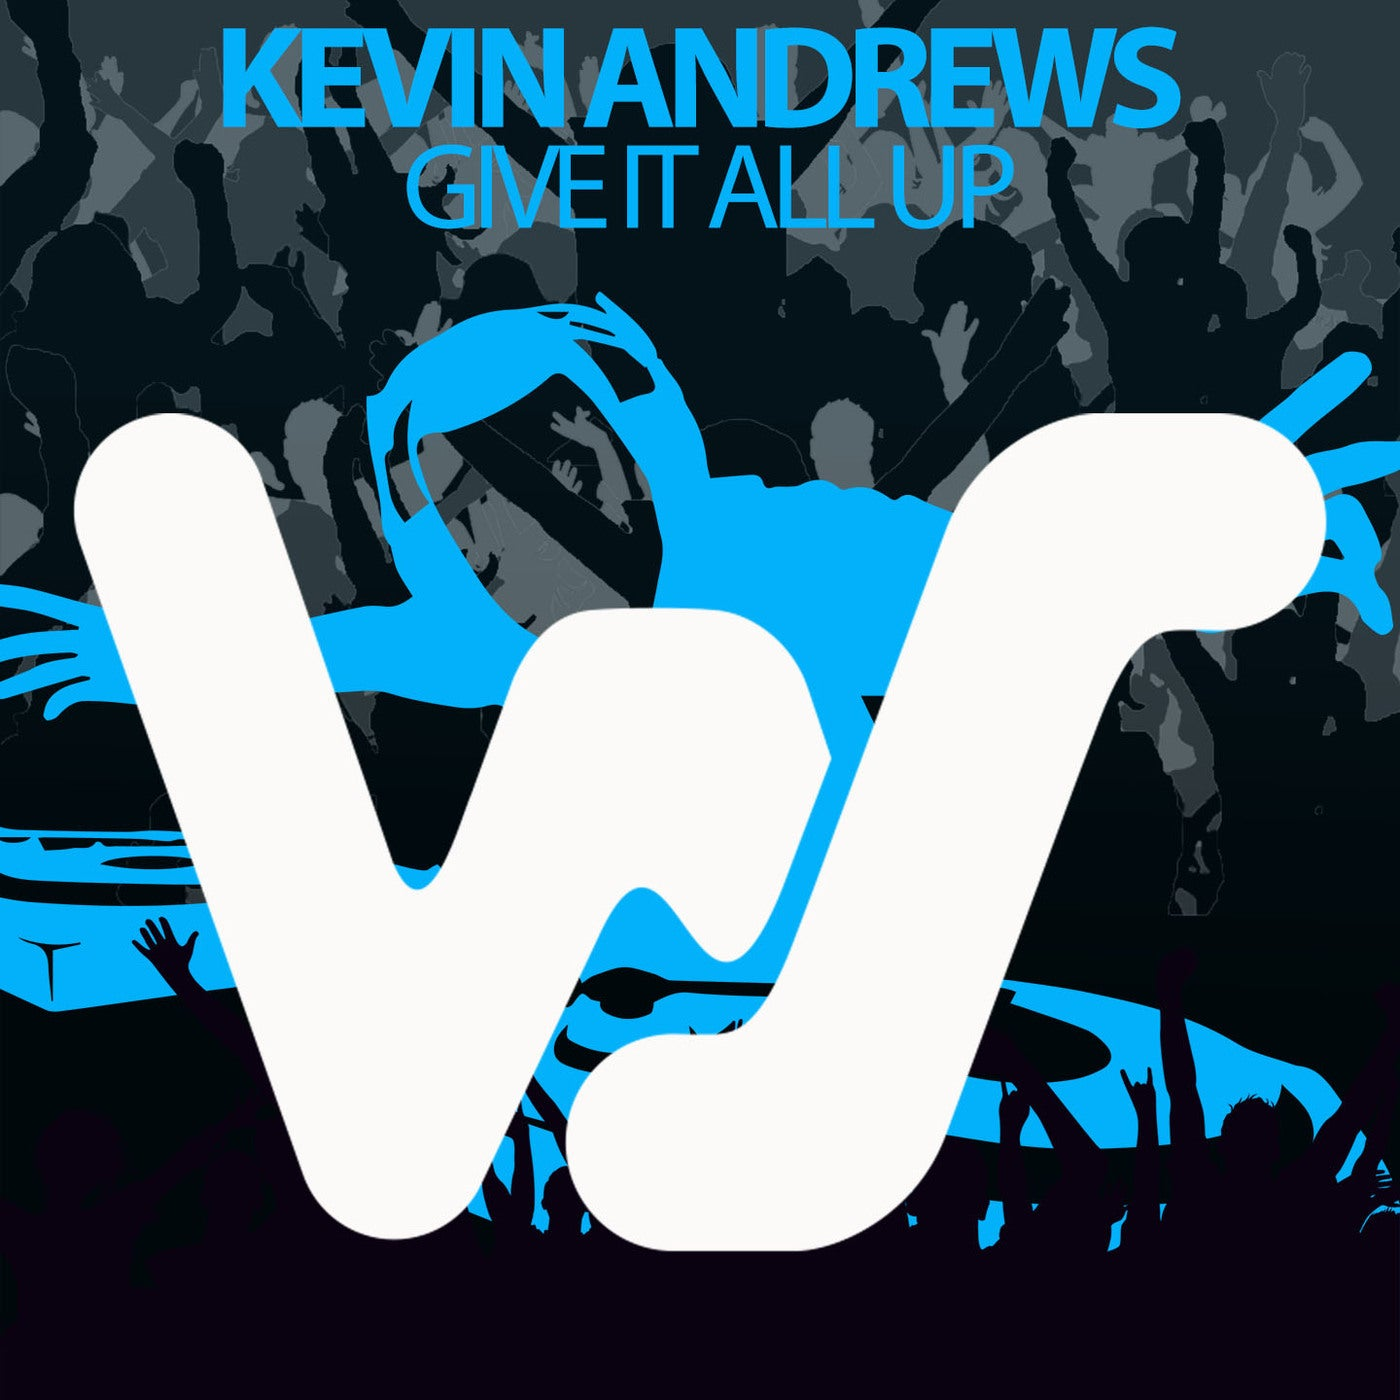 Give It All Up (Original Mix)